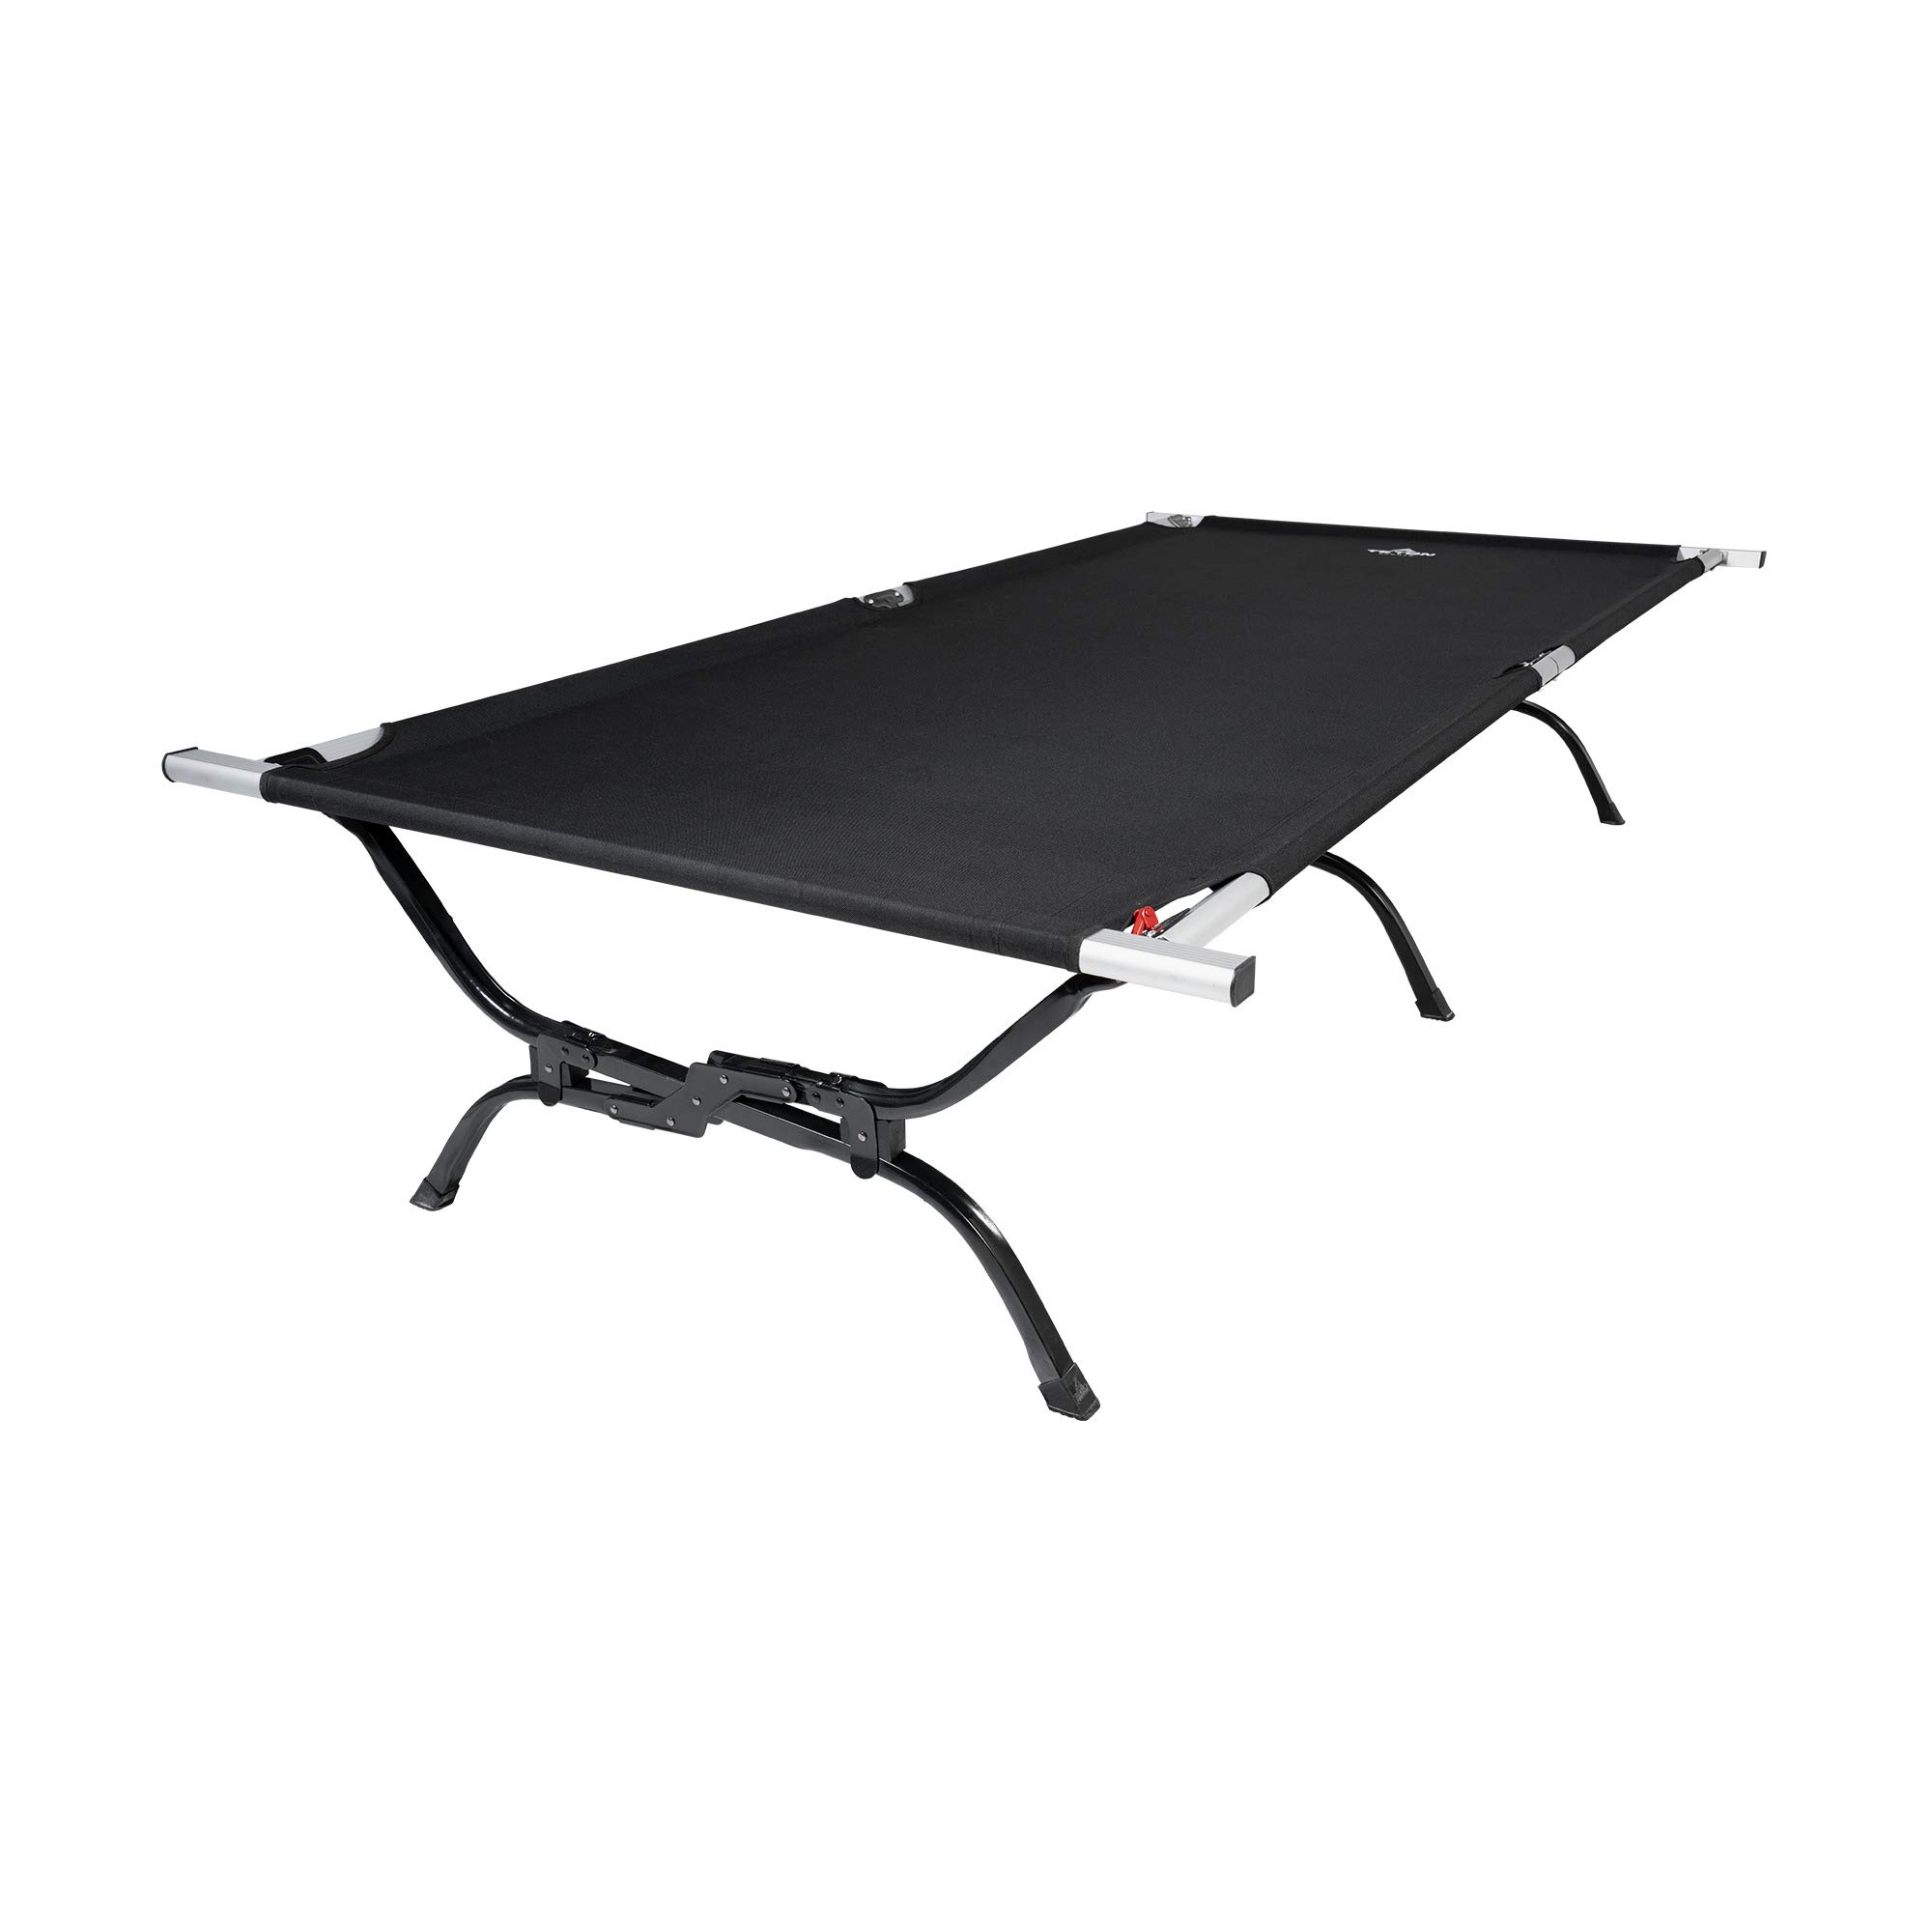 TETON Sports Outfitter XXL Camping Cot with Patented Pivot Arm; Camping Cots for Adults; Folding Cot Bed; Easy Set Up; Storage Bag Included, Black - 120A by TETON Sports